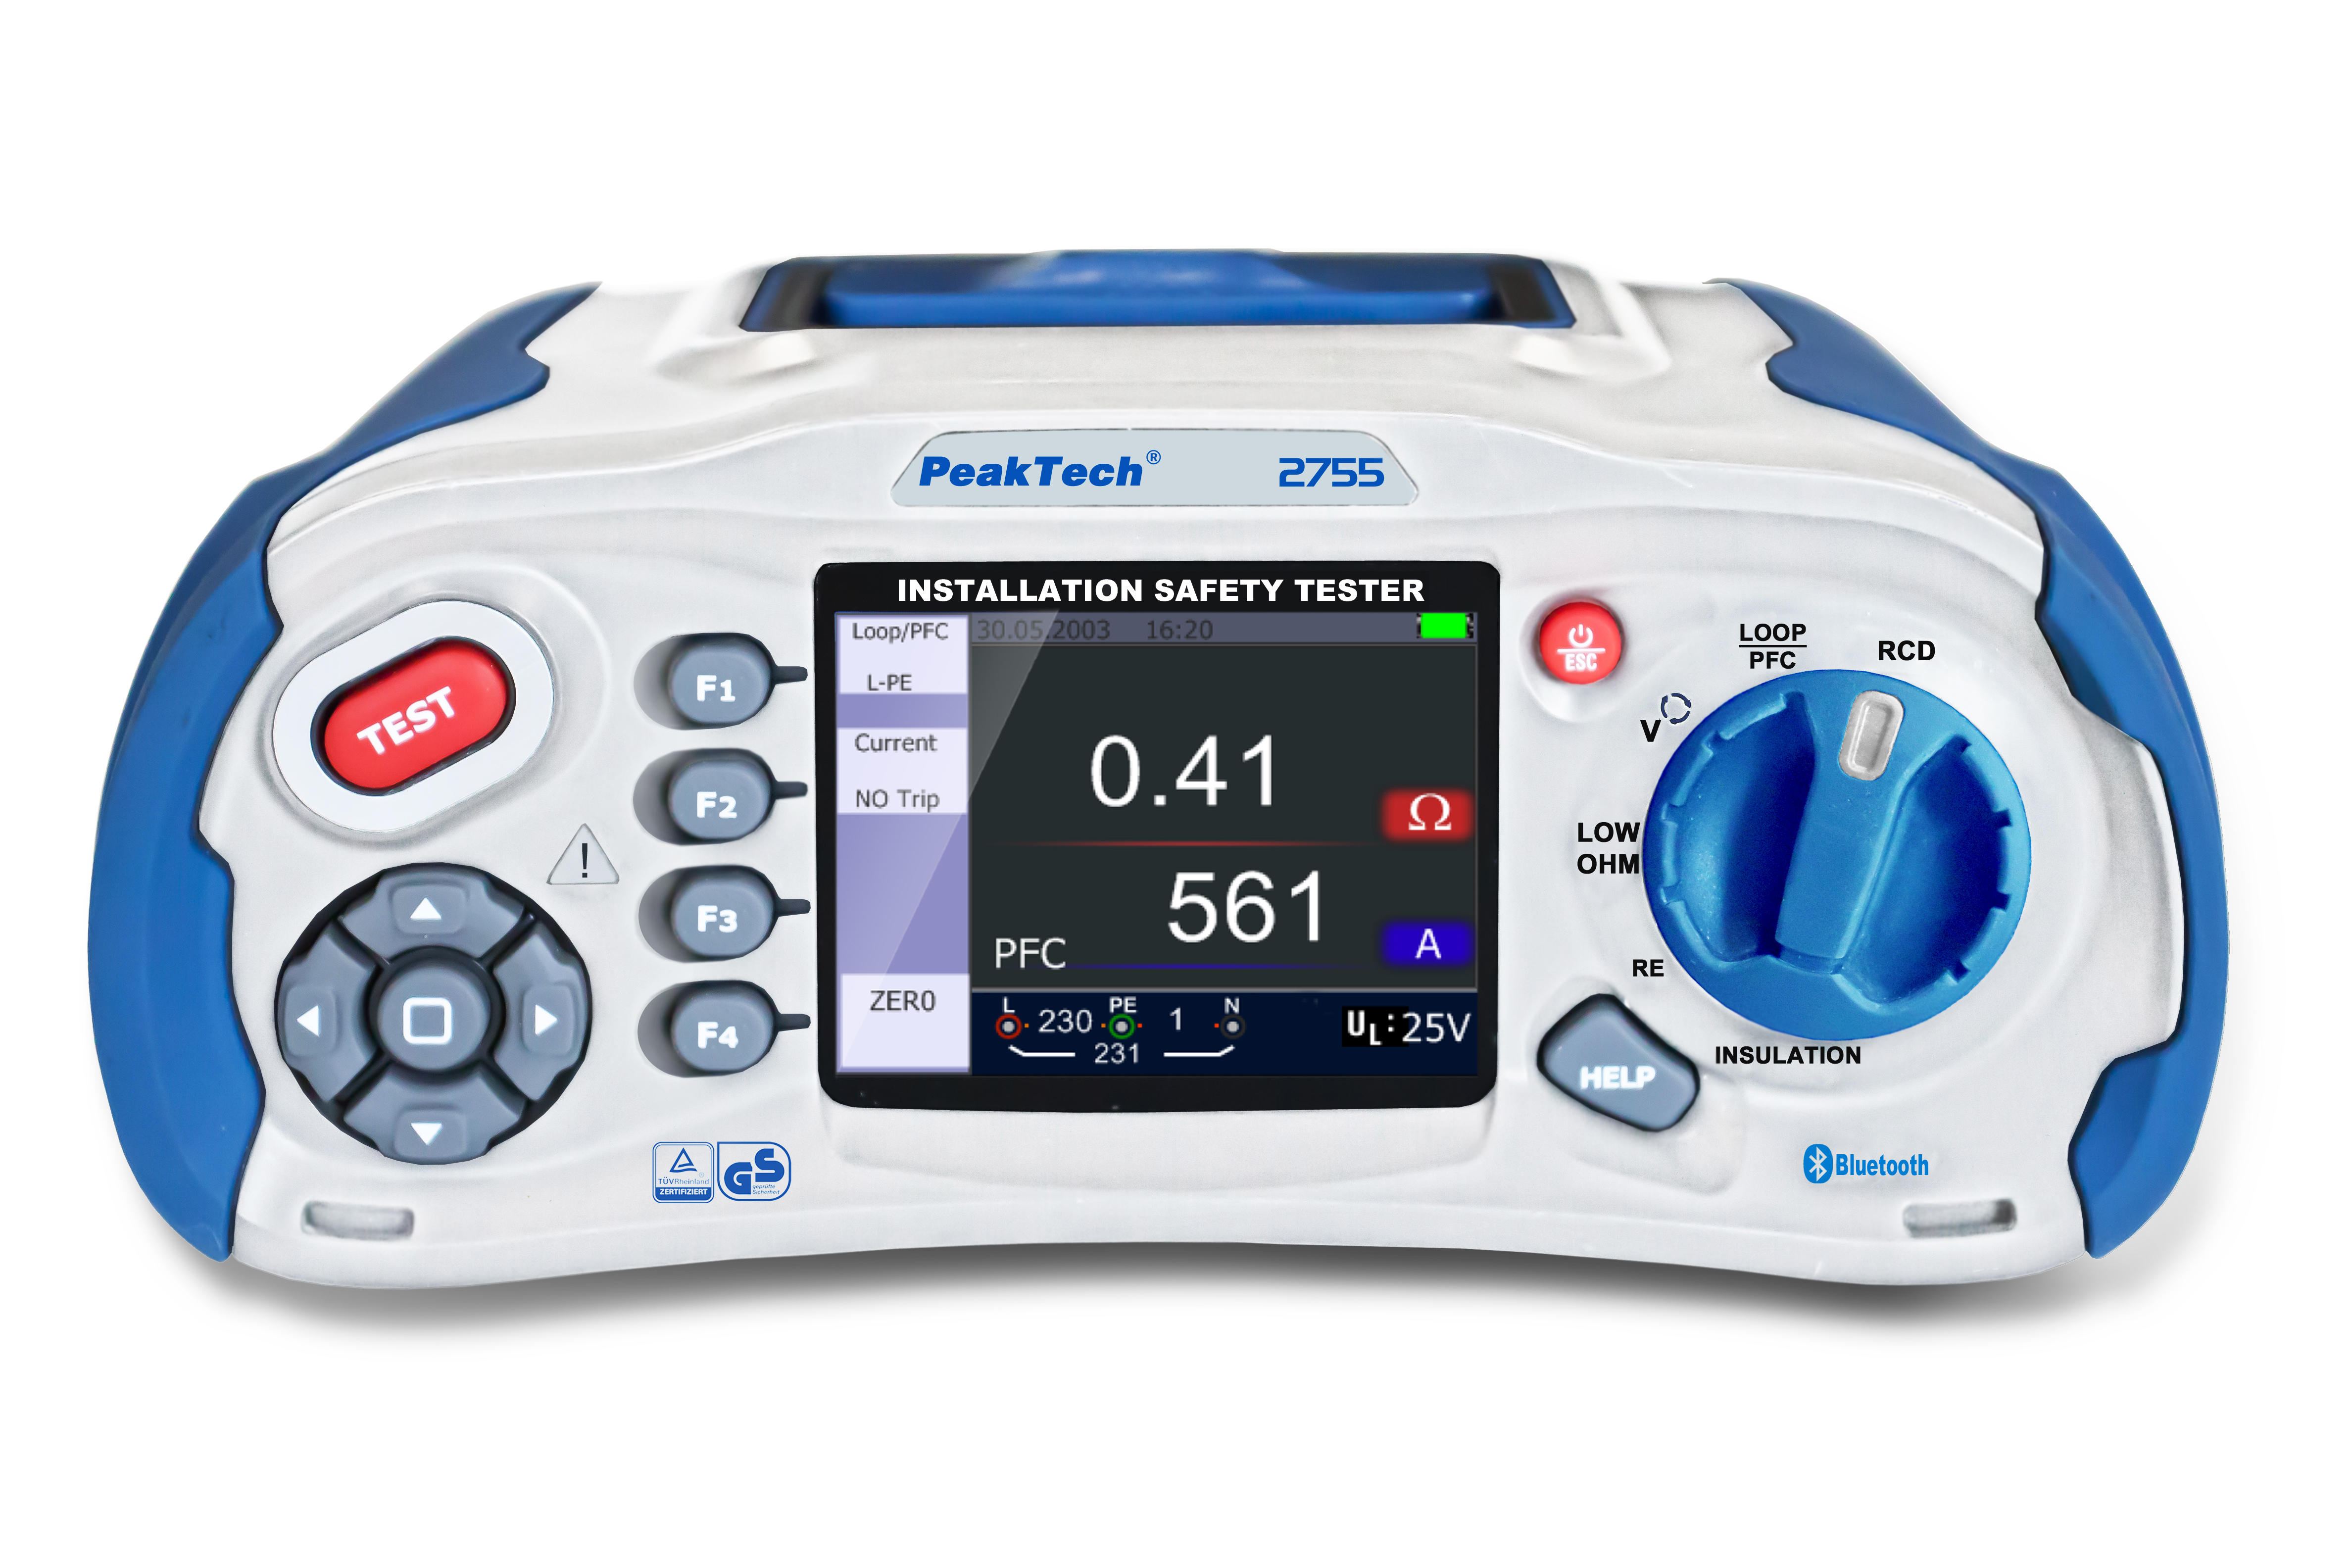 «PeakTech® P 2755» Installation Safety Tester